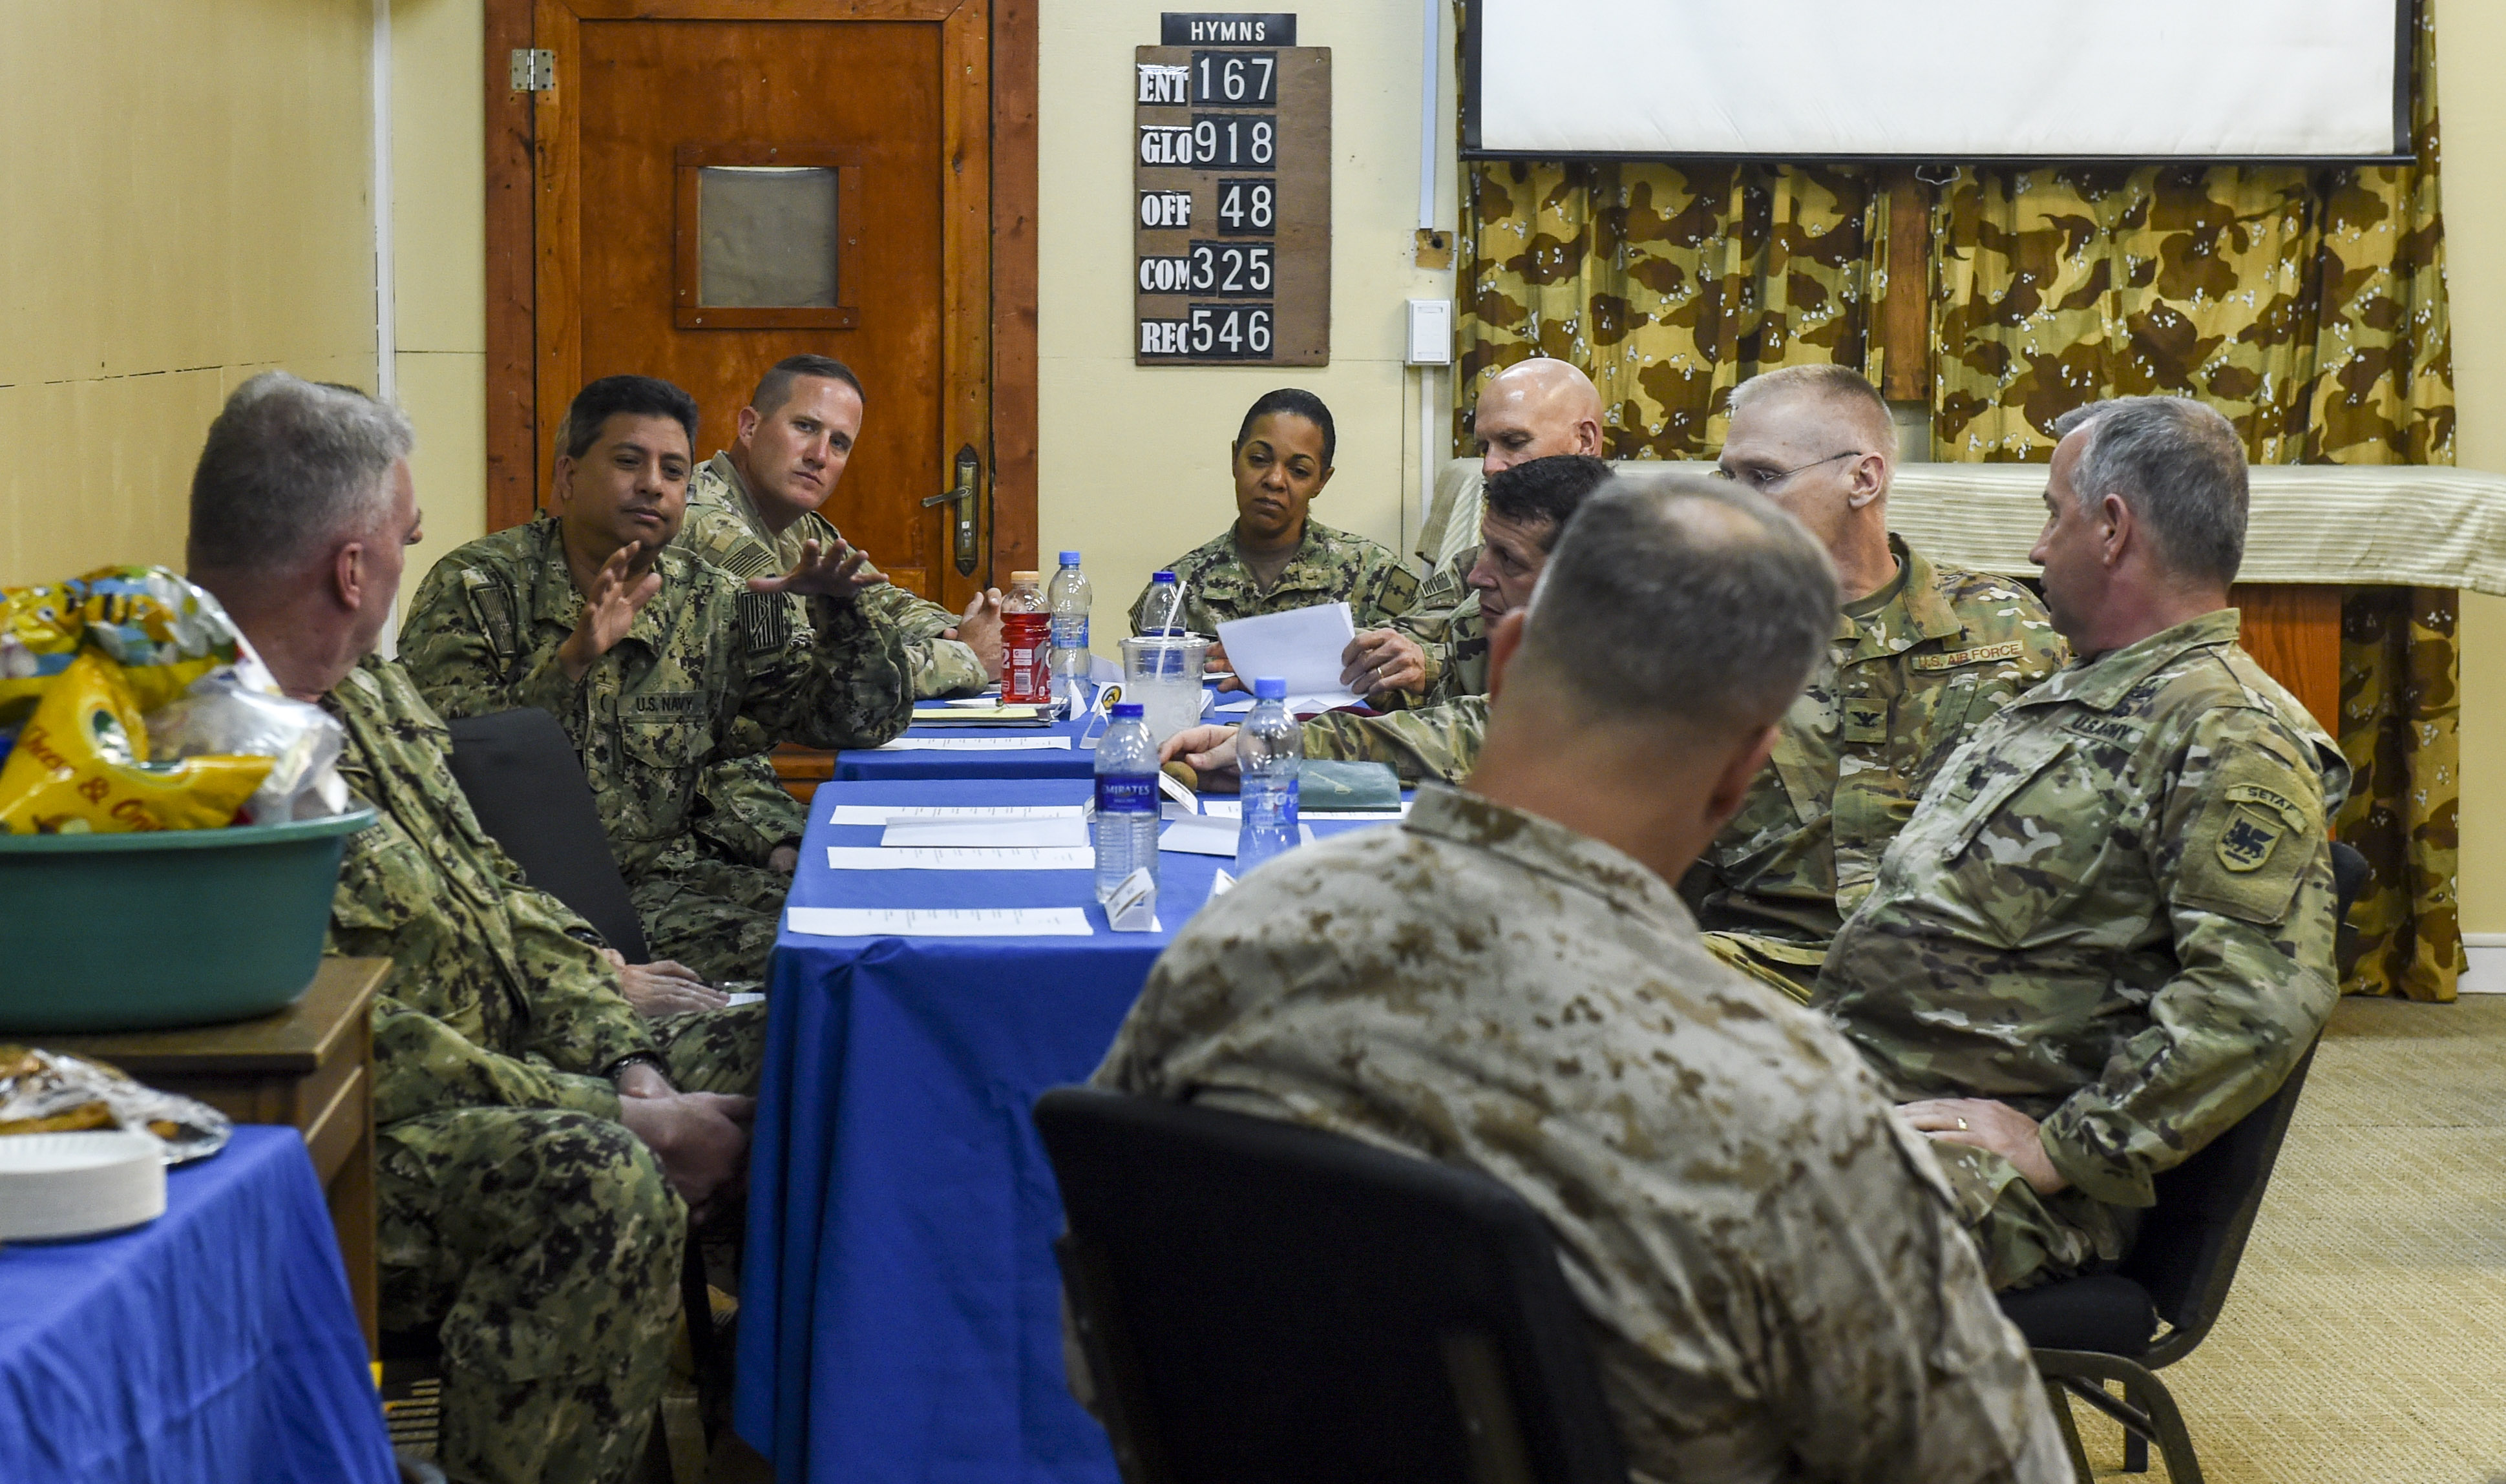 U.S. Navy Cmdr. Abuhena Saifuislam, deputy director of AFRICOM Religious Affairs, talks with Maj. Gen. David Furness, commanding general of Combined Joint Task Force-Horn of Africa (CJTF-HOA), and other chaplains and chaplain assistants during a religious affairs workshop at Camp Lemonnier, Djibouti, April 11, 2018. The CJTF-HOA Religious Affairs team hosted the workshop to synchronize and plan the support they provide for service members throughout the combined joint operating area. (U.S. Air Force photo by Staff Sgt. Timothy Moore)